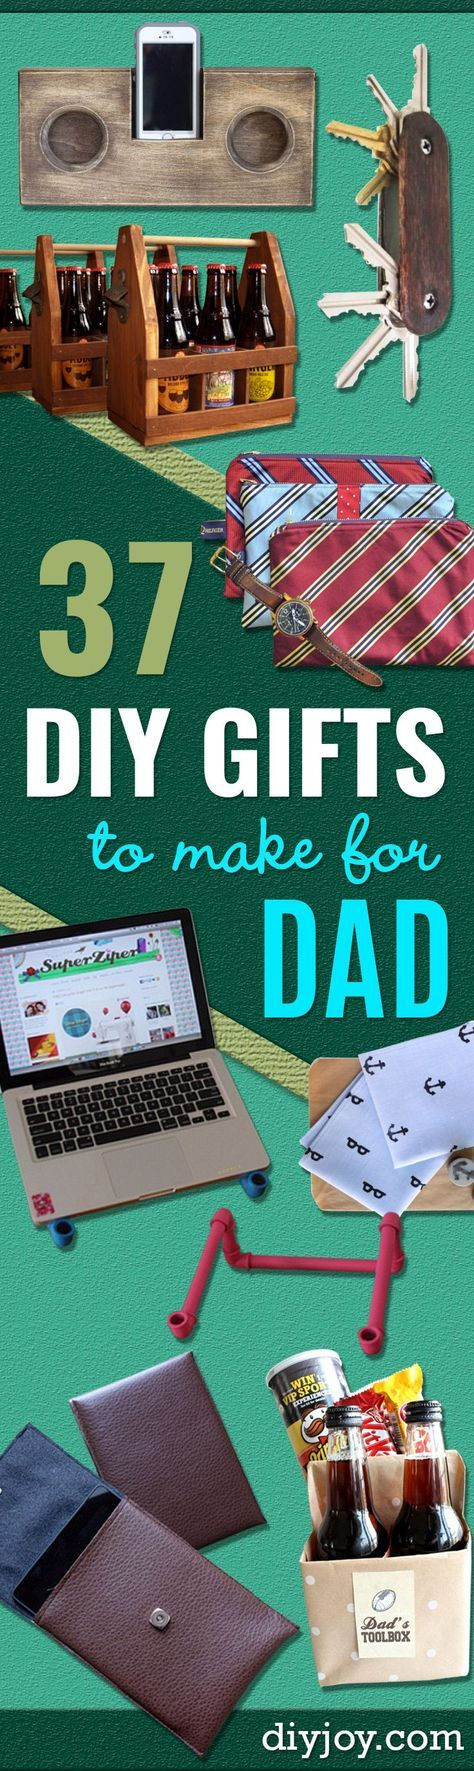 Best 25 dad birthday presents ideas on pinterest for Last minute diy birthday gifts for dad